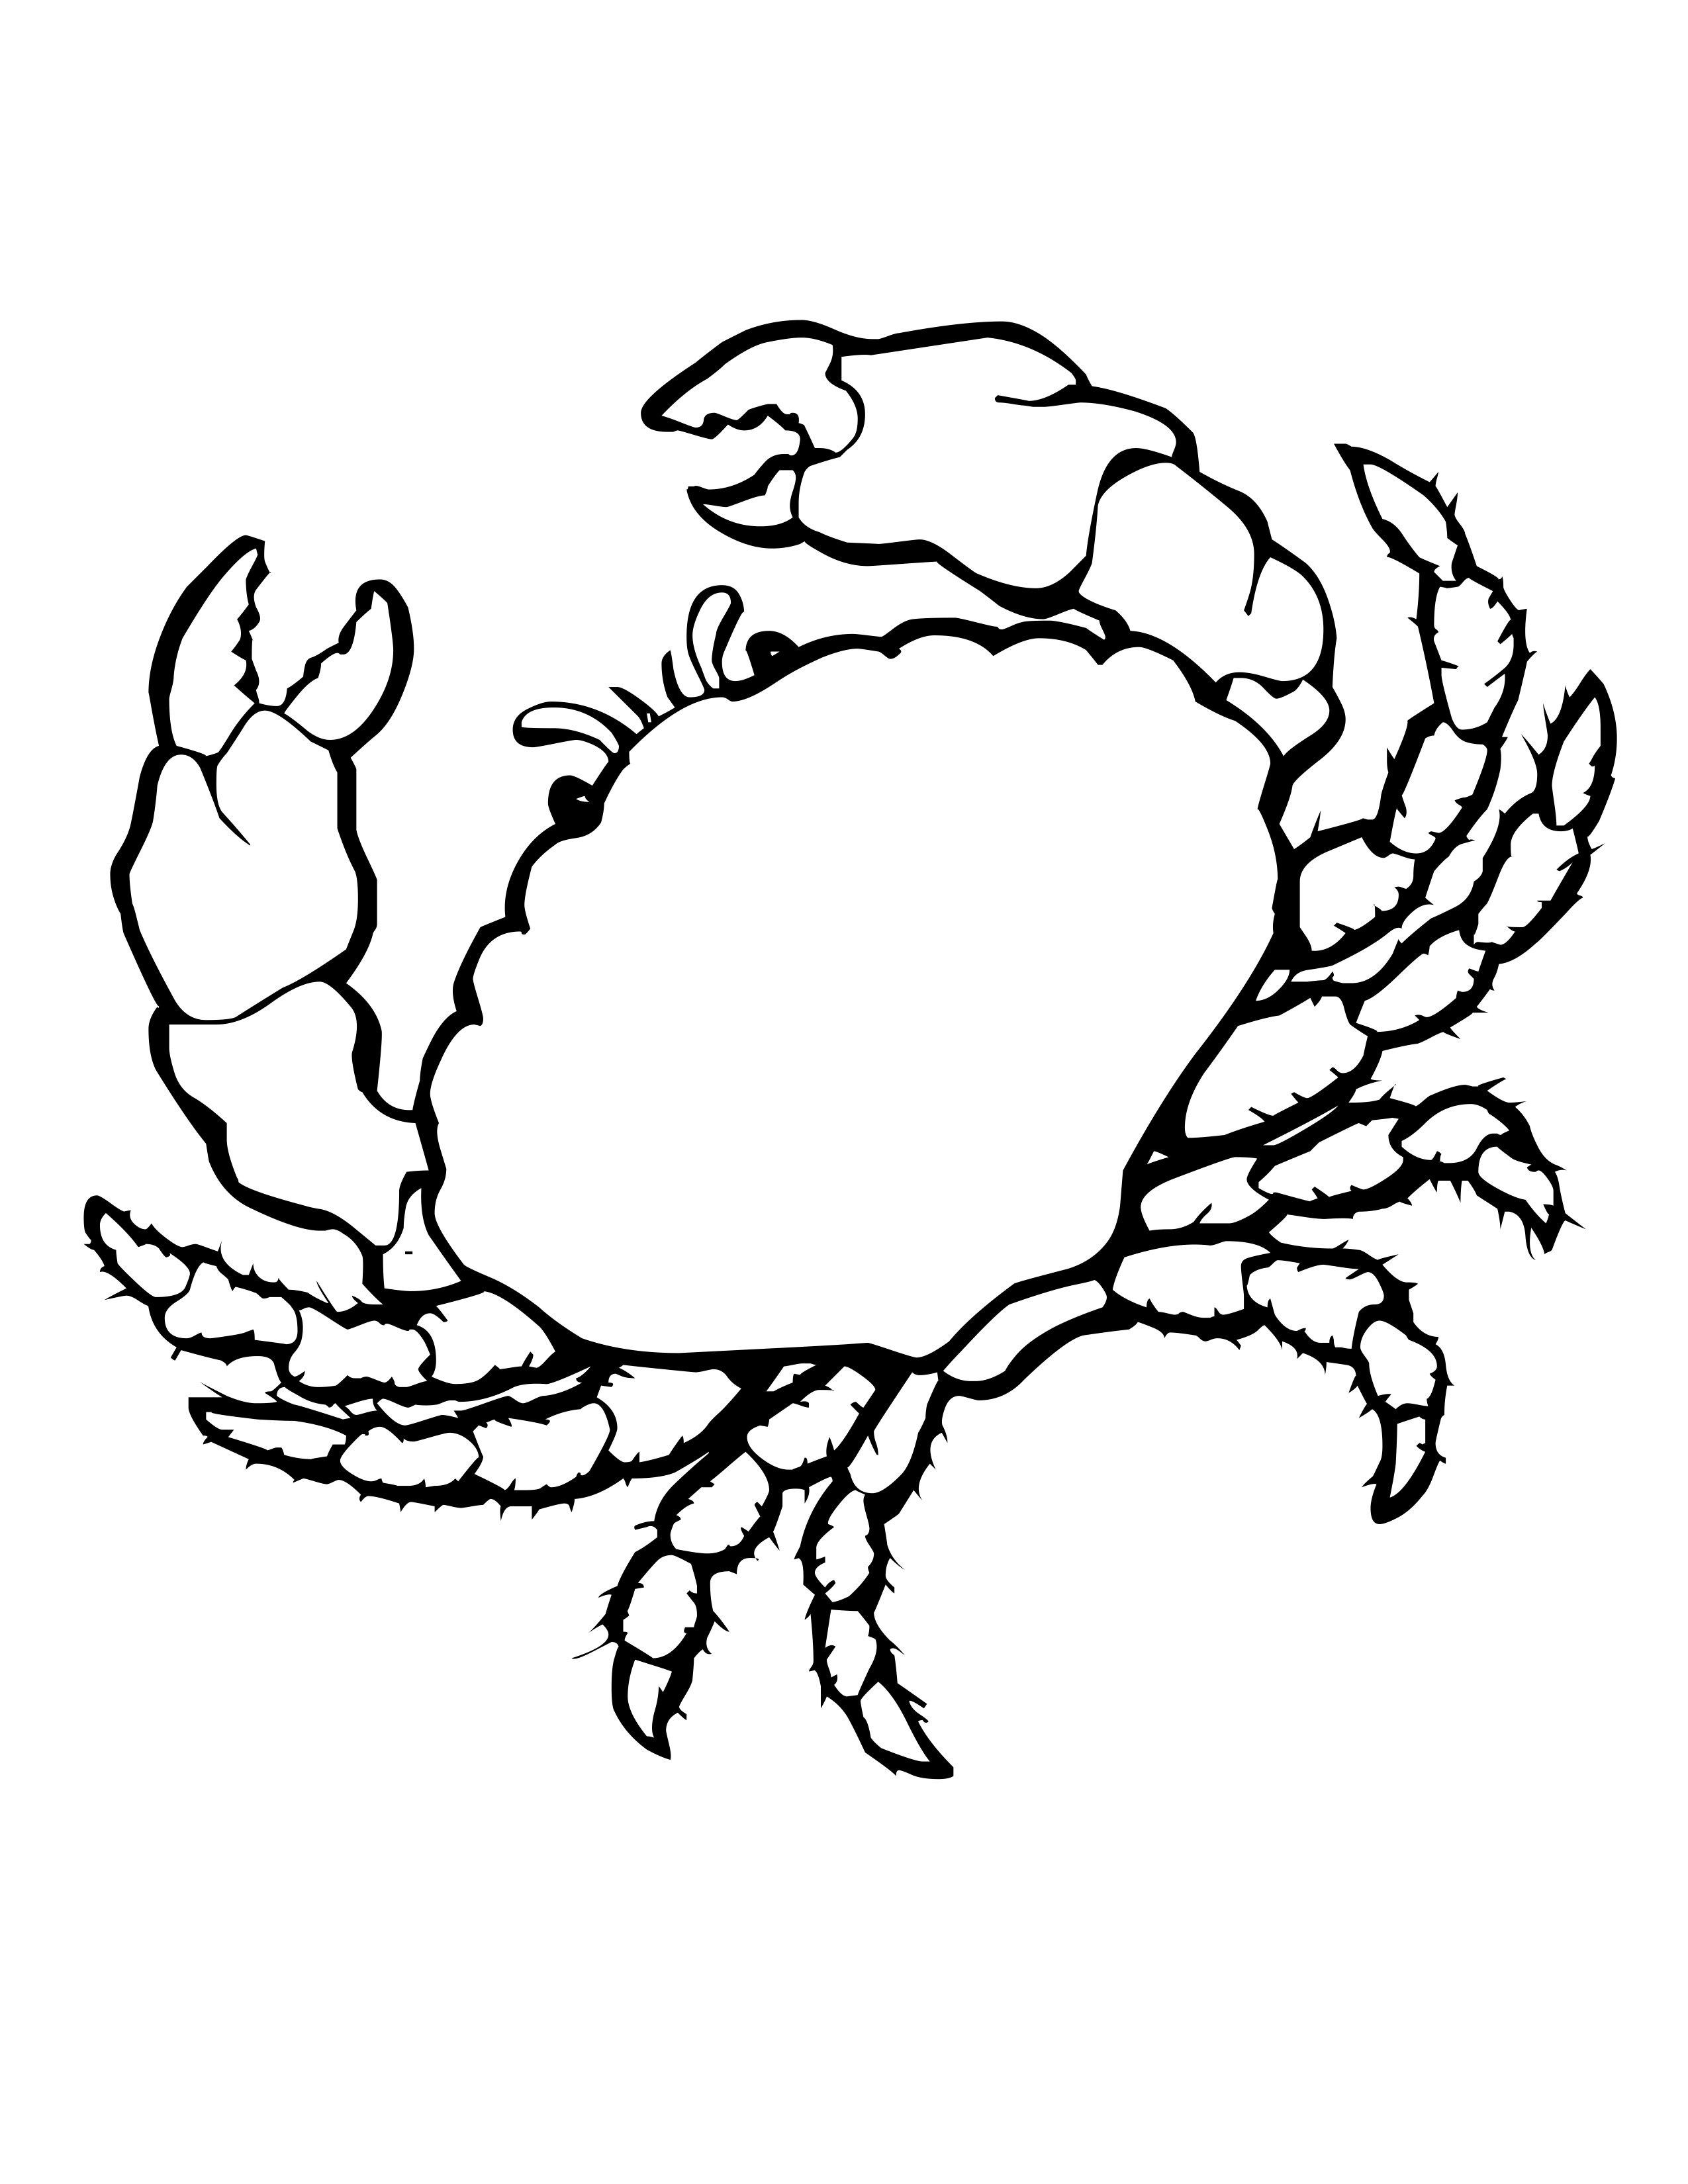 Shell clipart colouring page #1